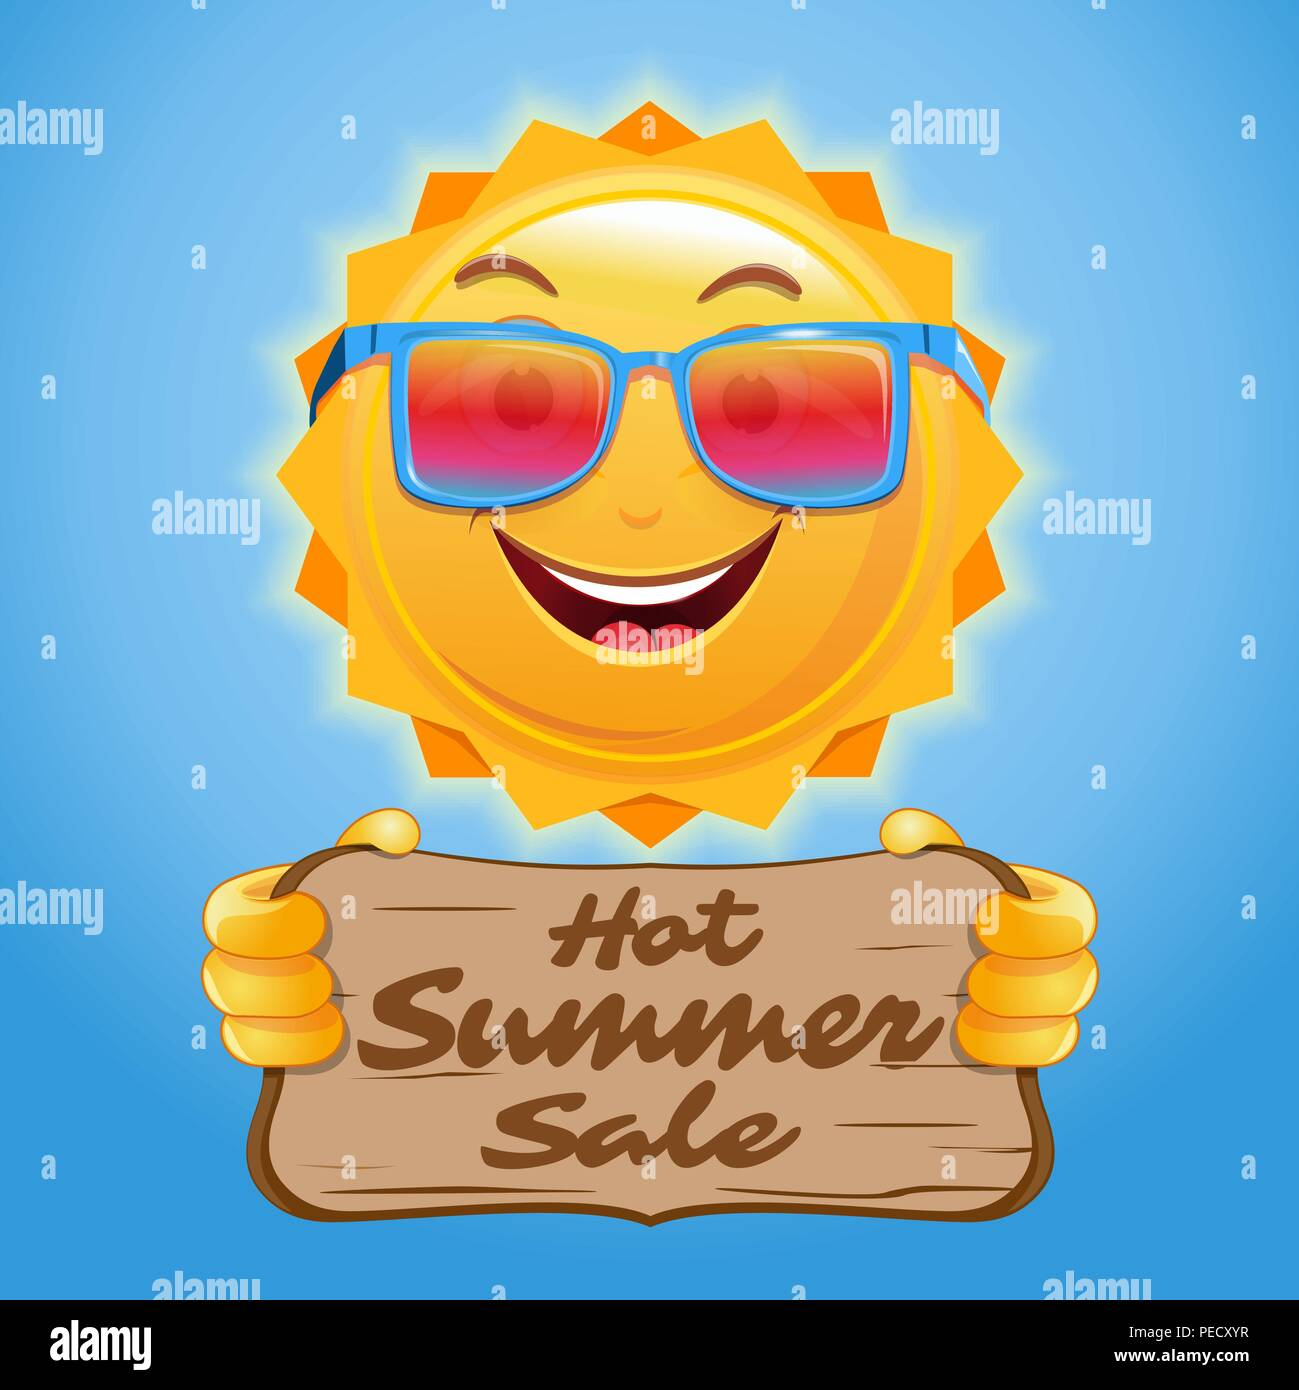 Hot summer sale. Advertising poster design for the summer sale. Happy anthropomorphic sun holds a wooden sign with an inscription. Vector illustration - Stock Vector